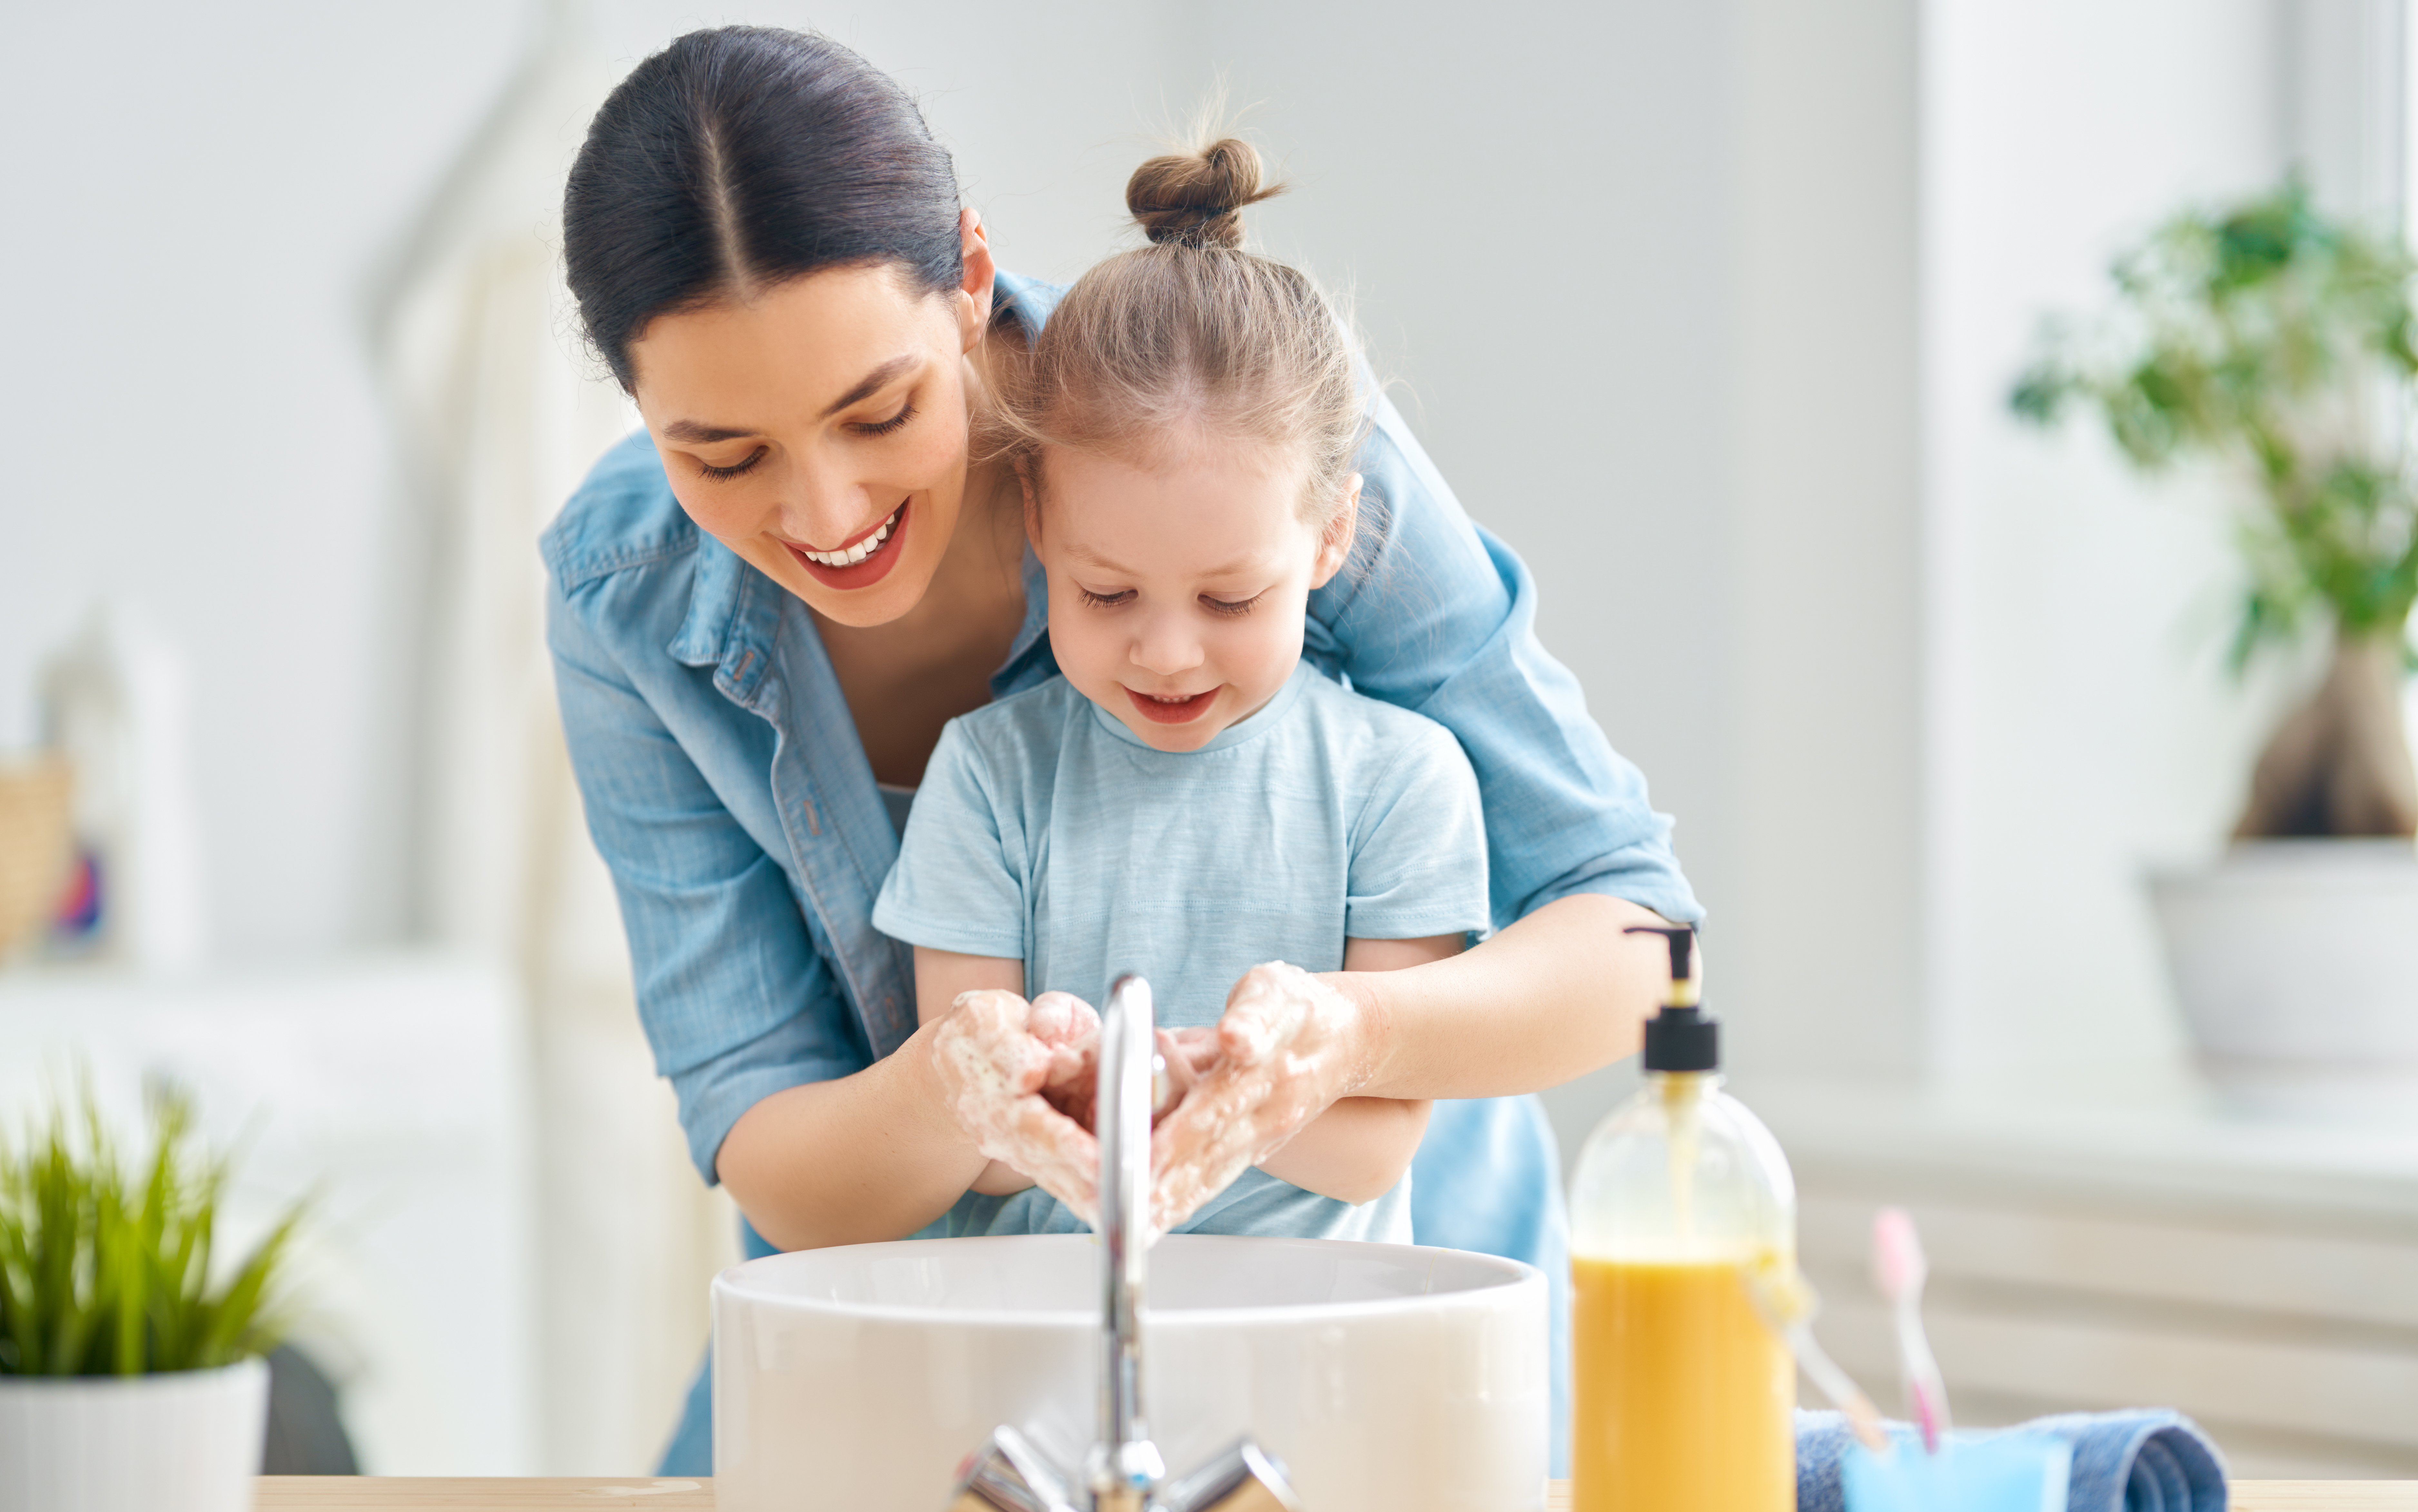 A mom with her daughter washing their hands over a sink in the kitchen